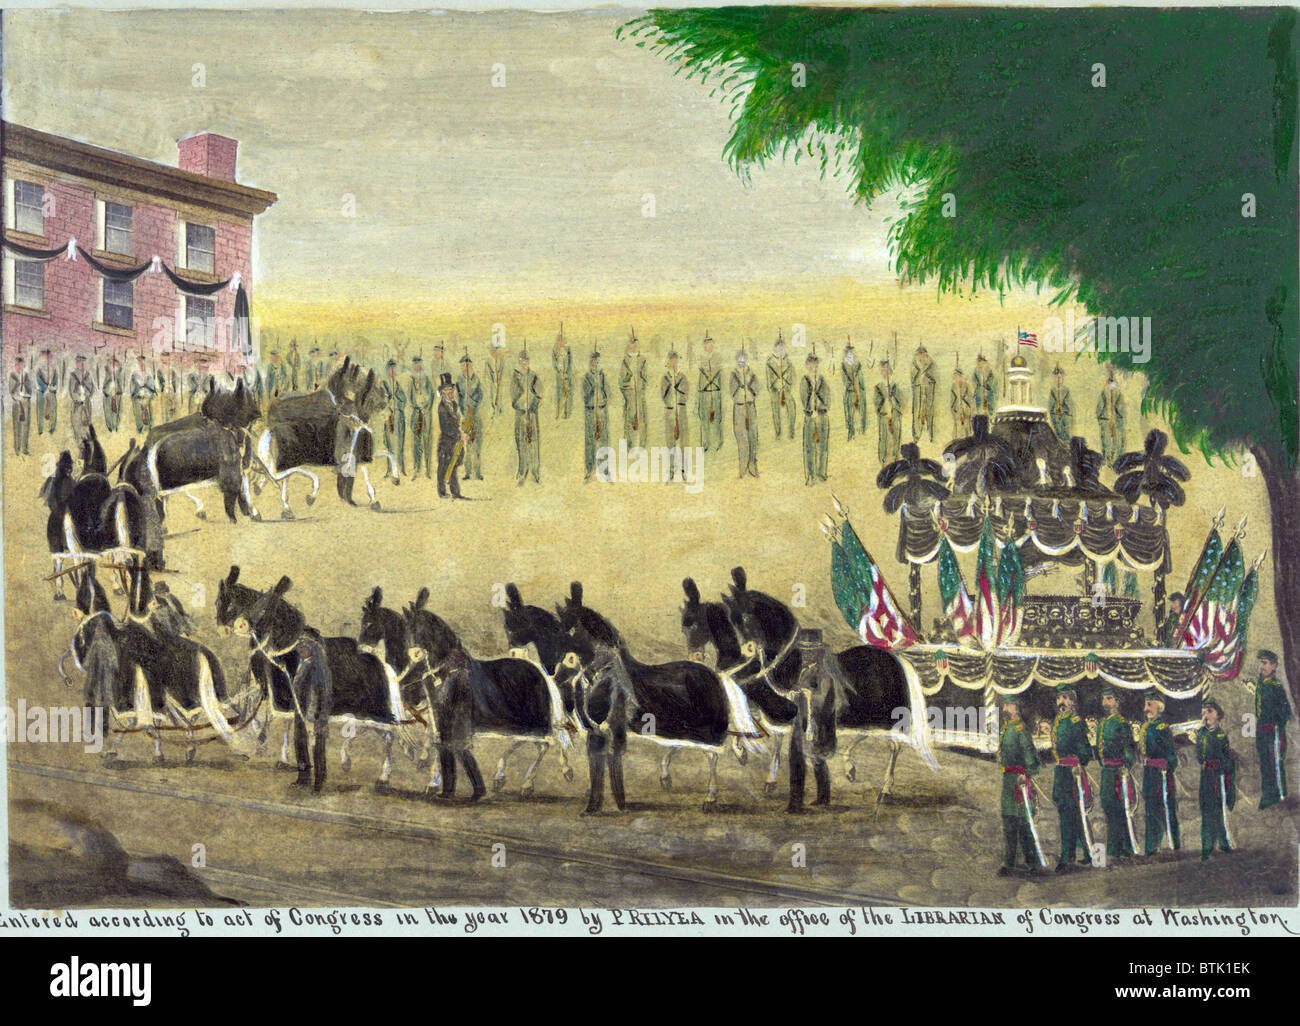 Abraham Lincoln S Funeral Car In New York City On April 26th 1865